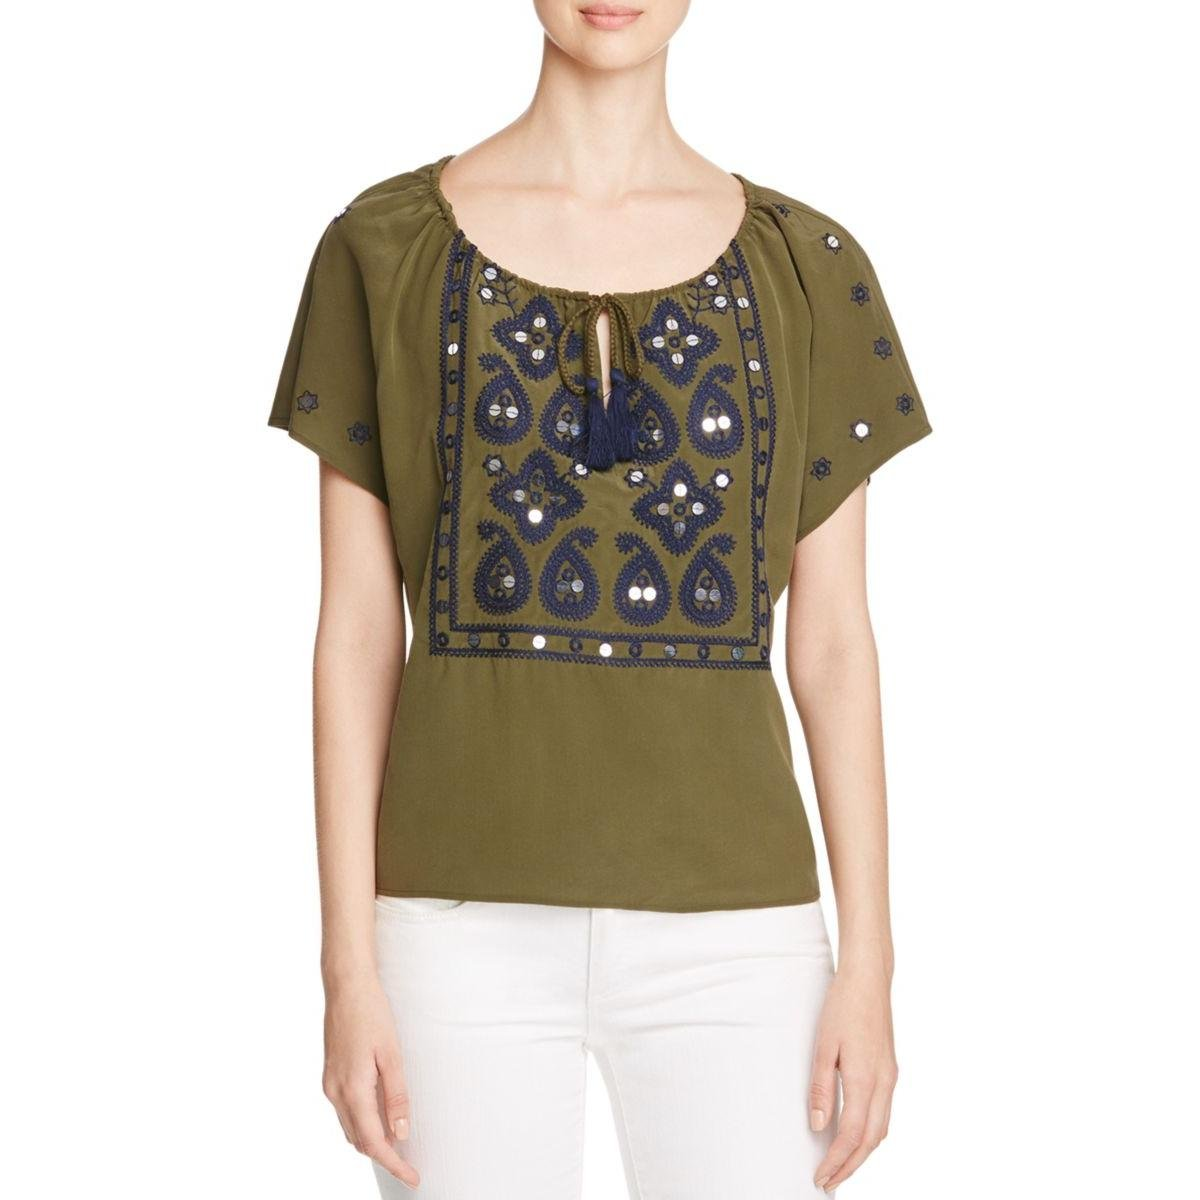 Tory Burch Womens Camille Top Embroidered Sequined Peasant Top Green 0